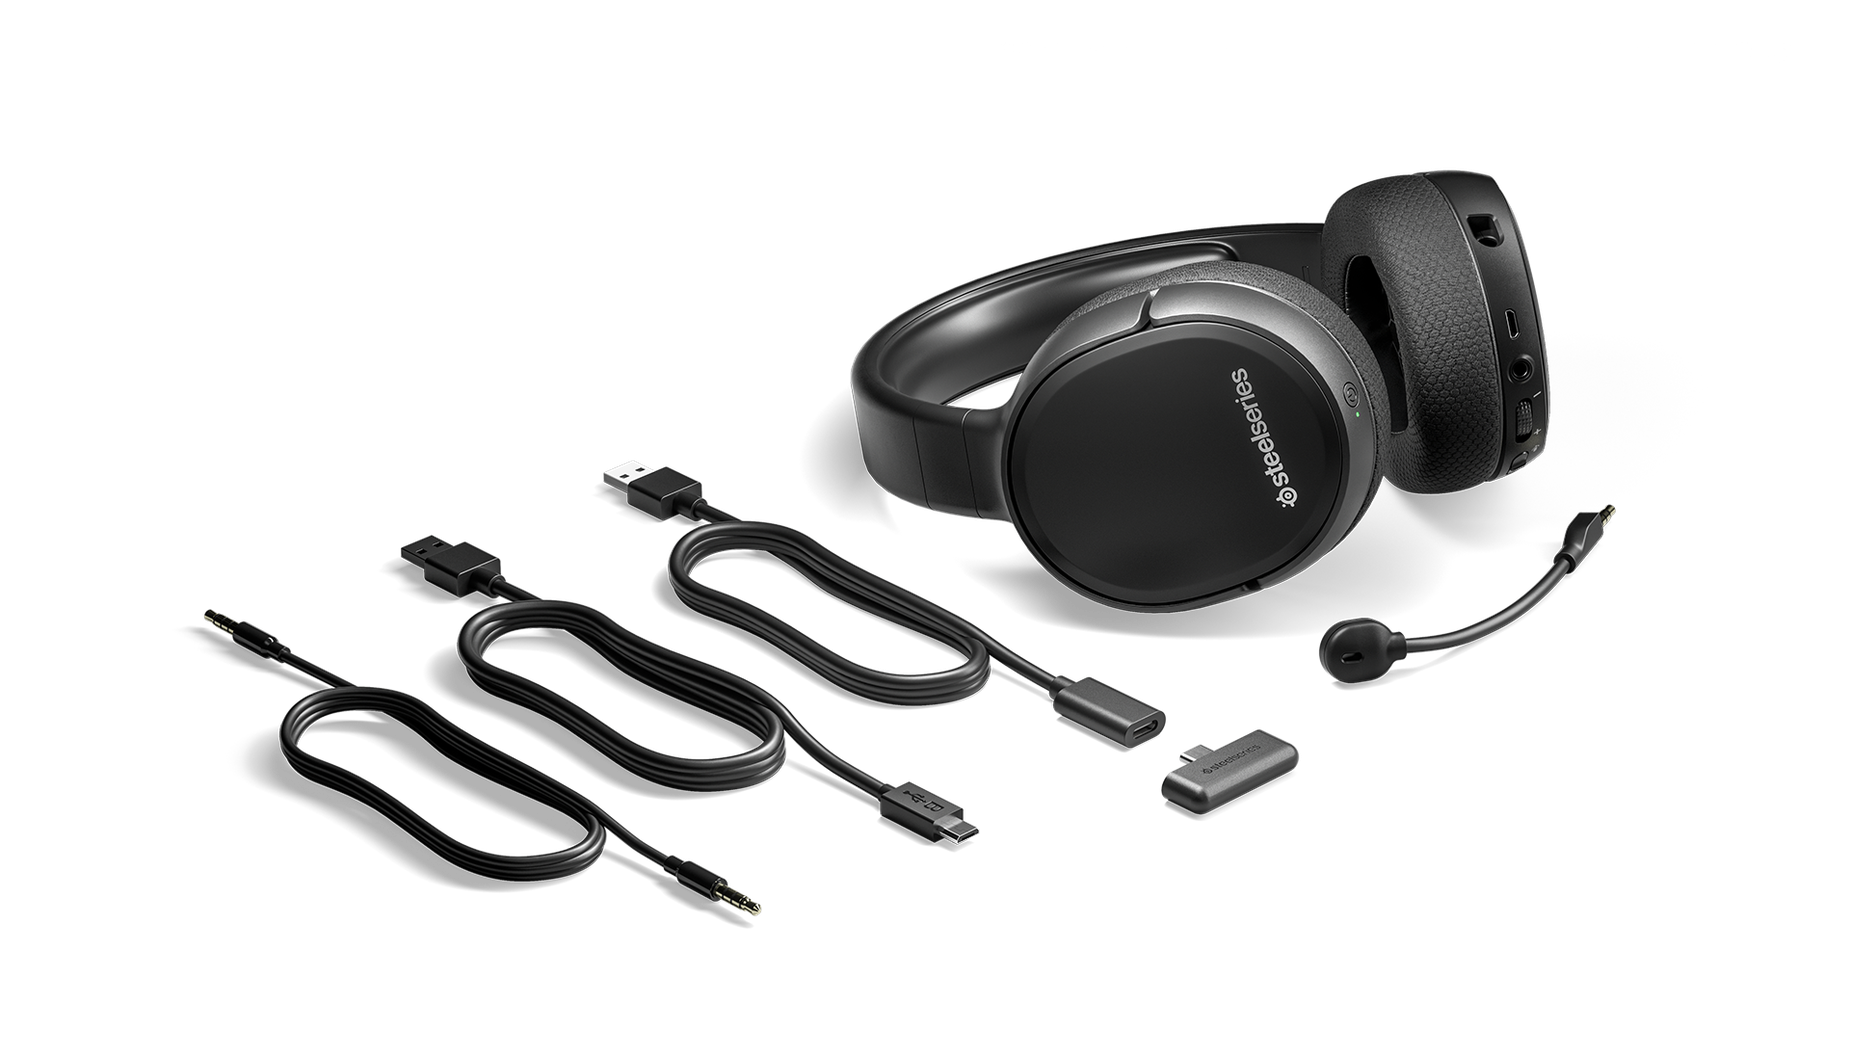 The Arctis 1 Wireless gaming headset surrounded by all the box contents including extra cables and the wireless dongle